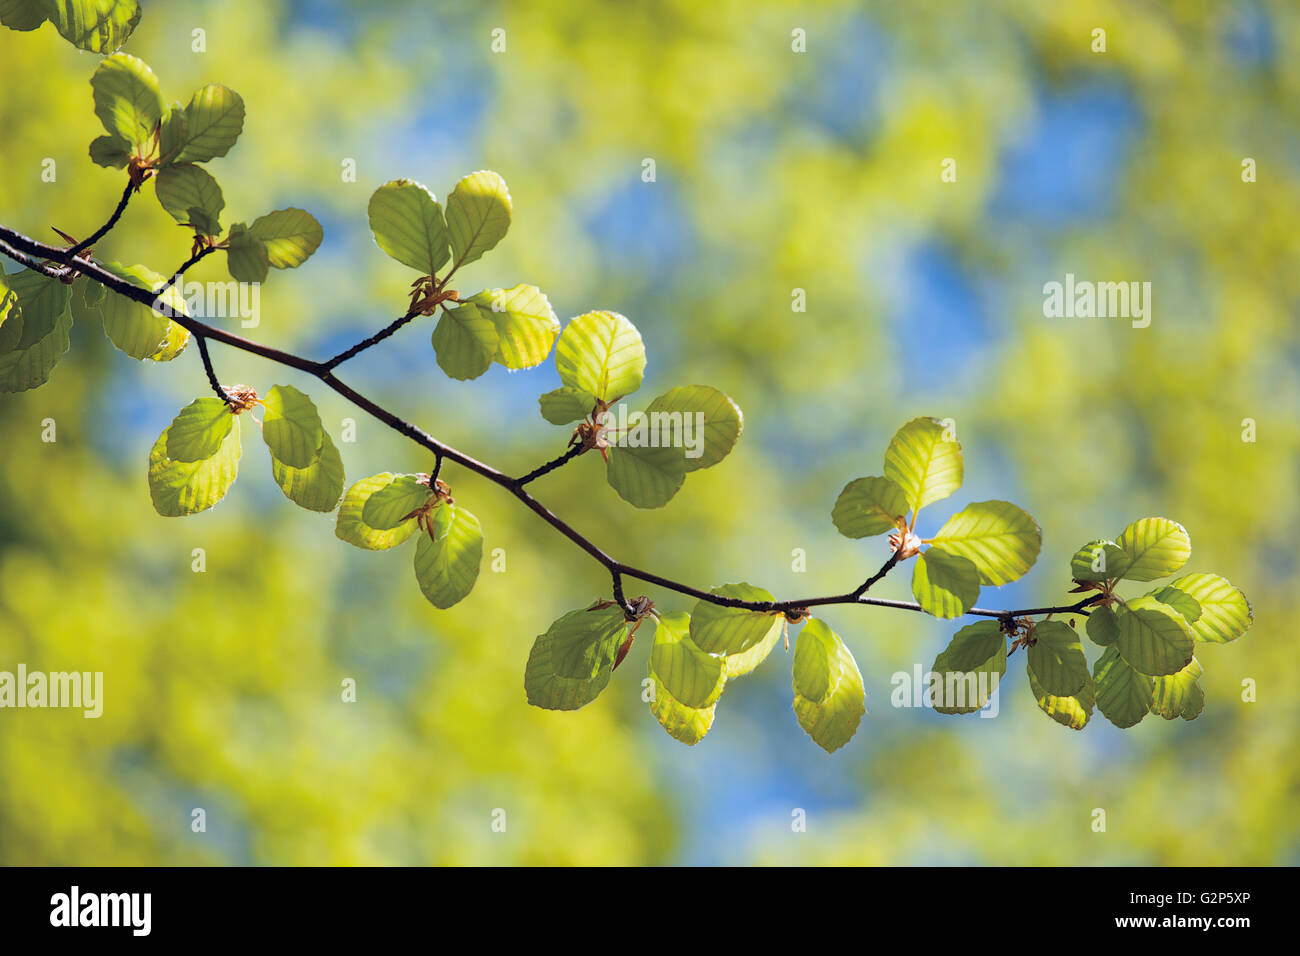 spring beech twig with fresh leaves on green and blue background - Stock Image